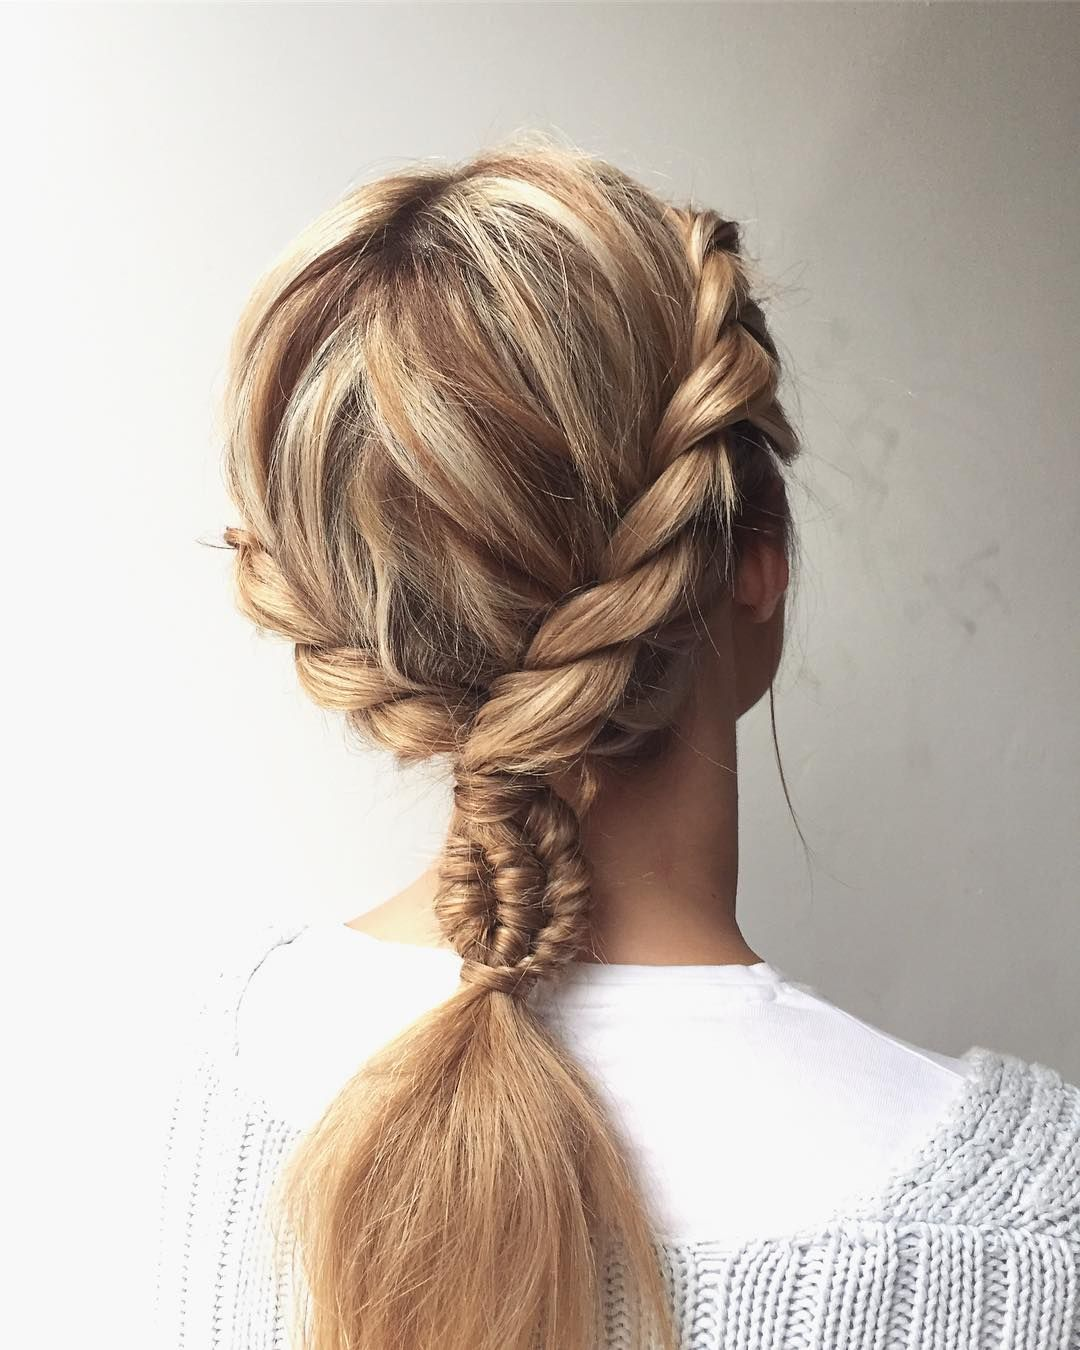 Twists & Braids : Featured hairstyle inspiration - Michael Gray Hair #hairstyle #braids #hair #weddinghairstyle